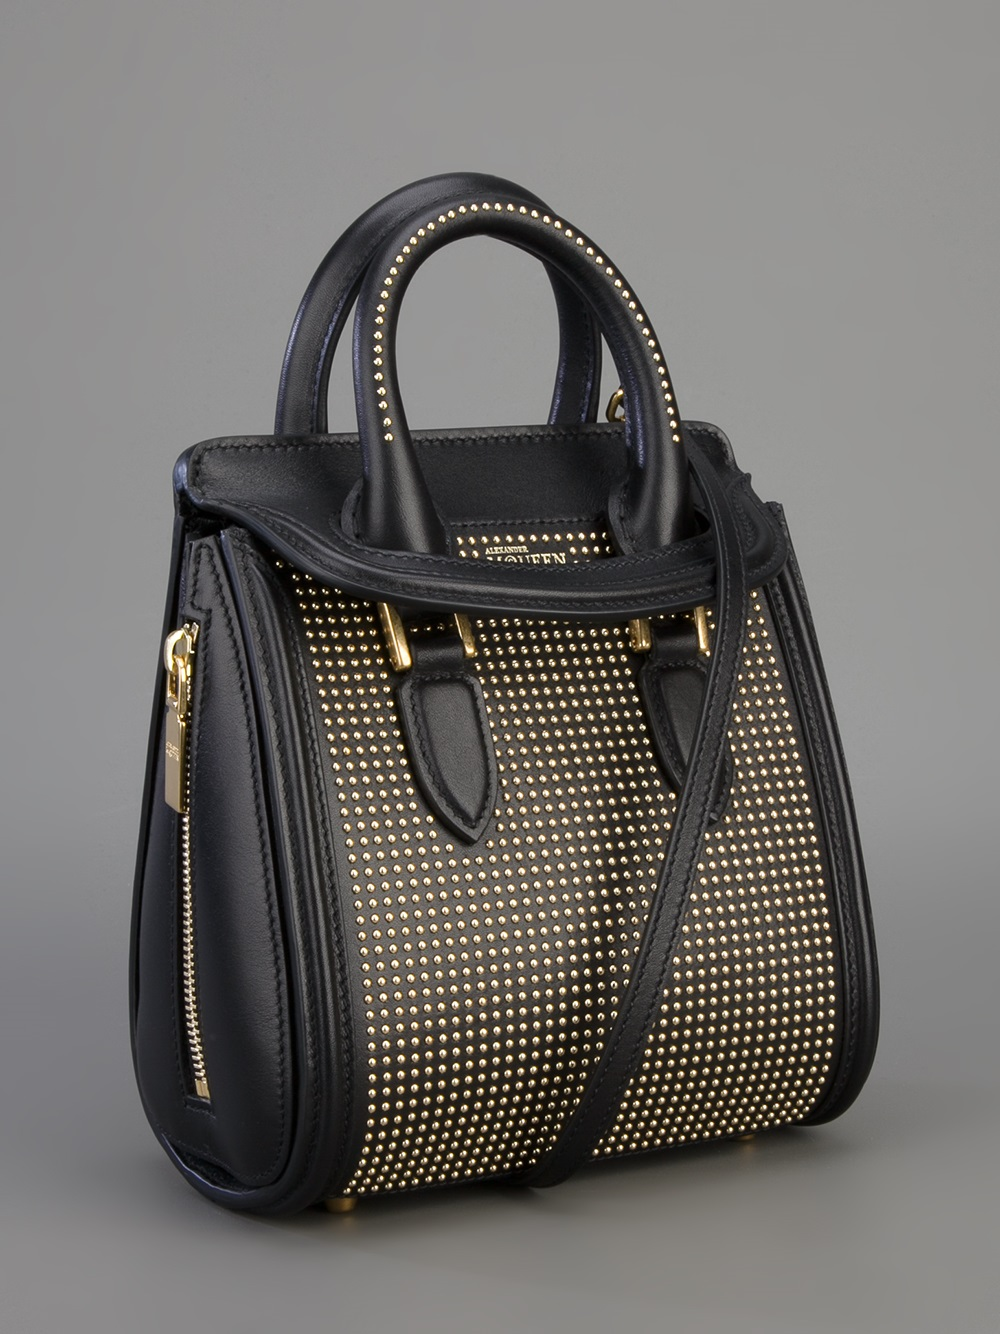 Alexander mcqueen Mini Heroine Bag in Black | Lyst